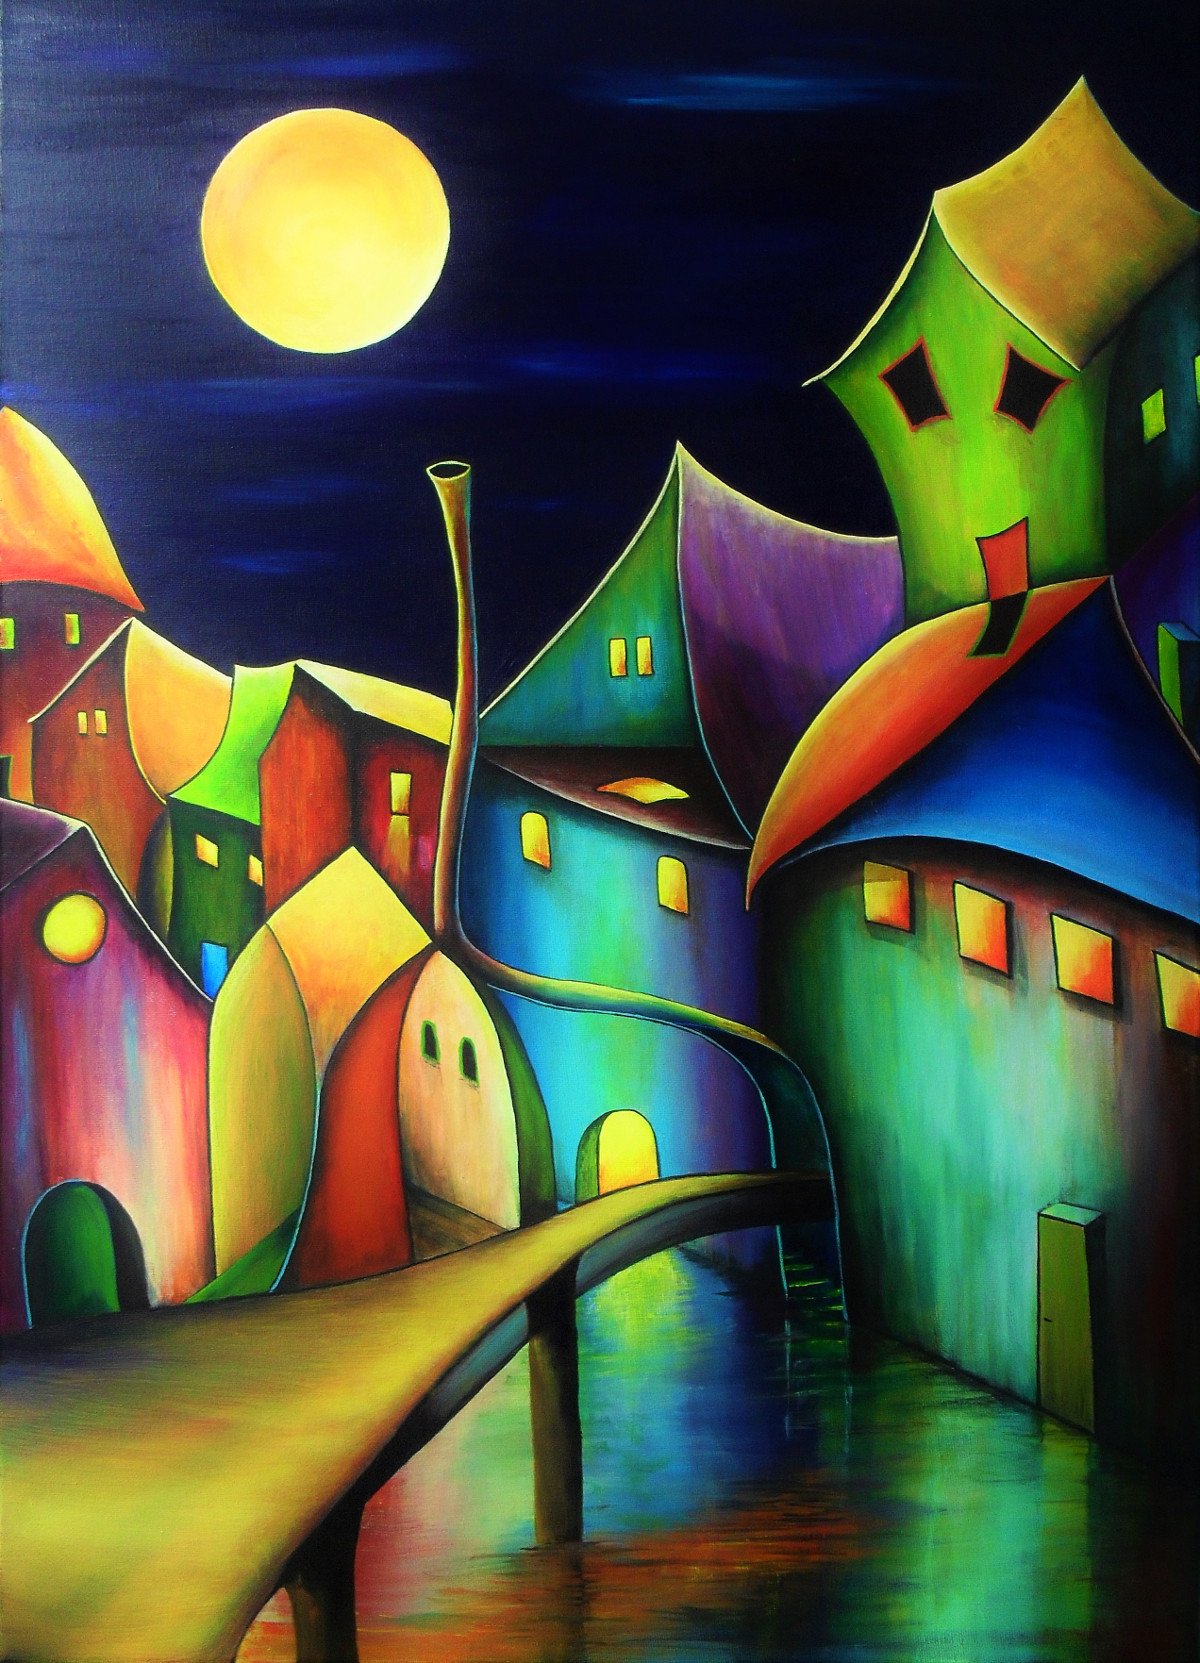 You are not alone. Fantasy painting of a village at night full of colours. The sky is dark blue and the yellow moon is shining on the weird lovely houses which are standing in the water. In most of the houses the light is on